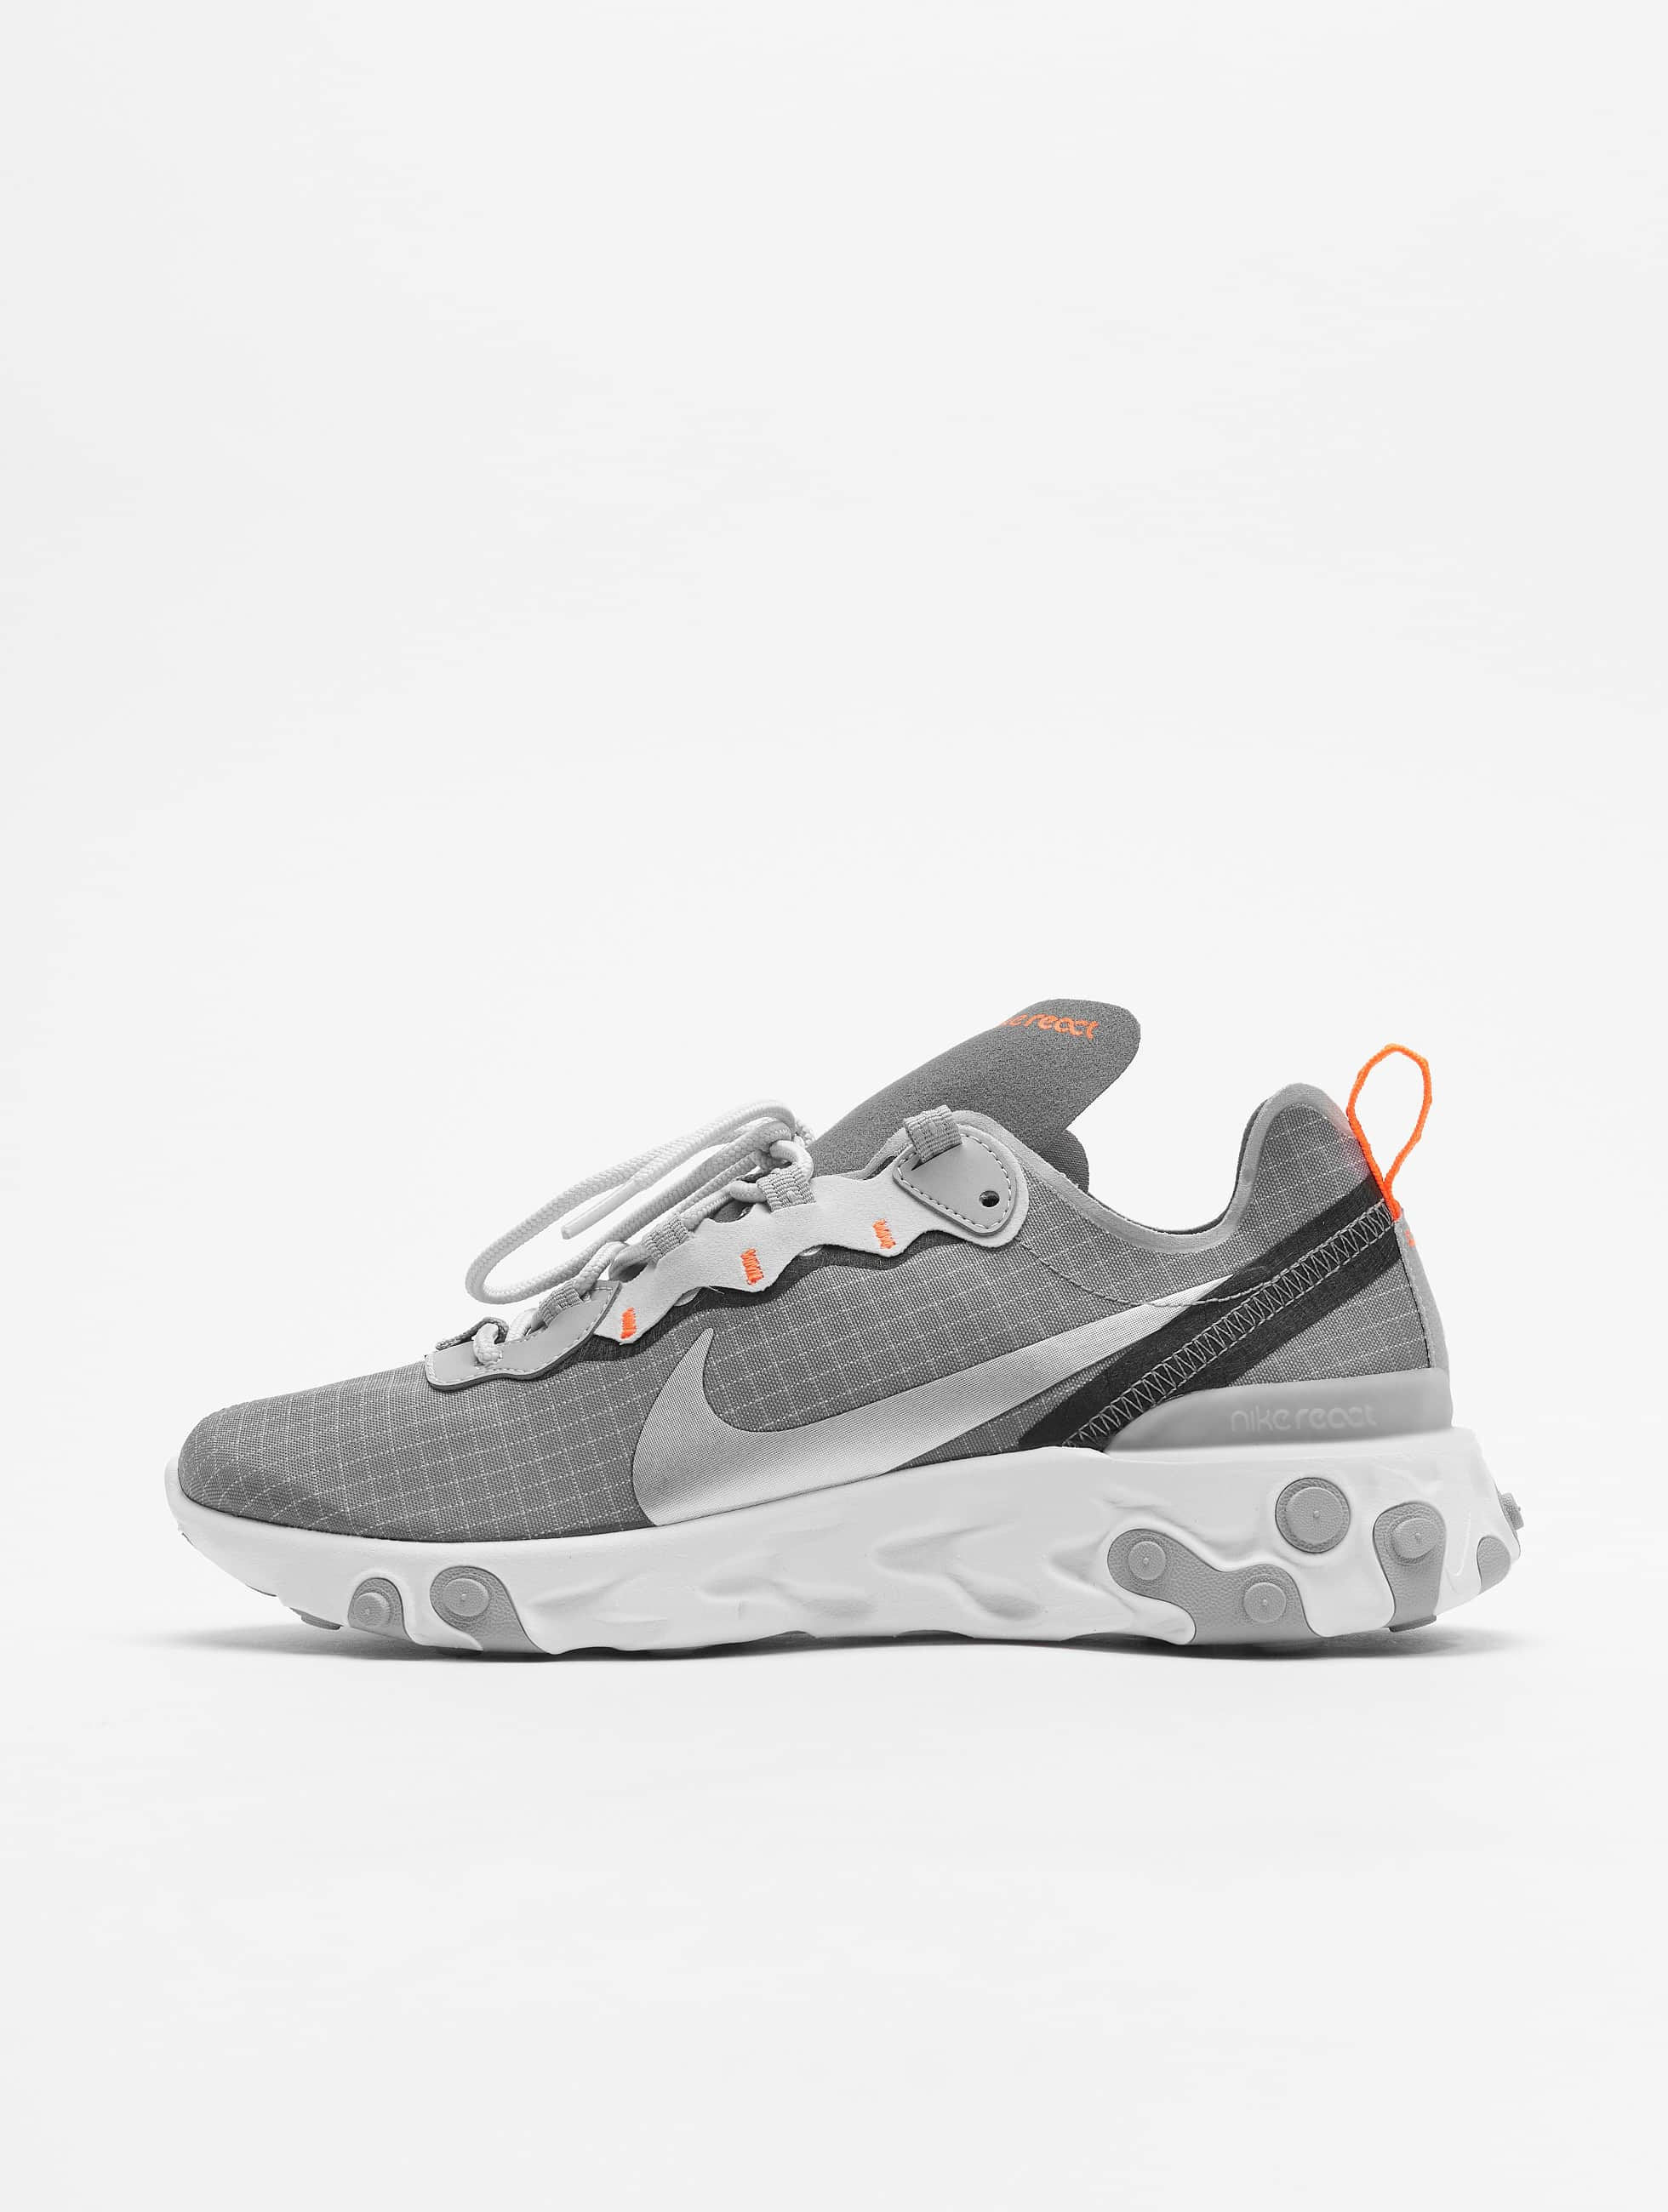 7c0cefdfe4f Nike schoen / sneaker React Element 55 in grijs 653921